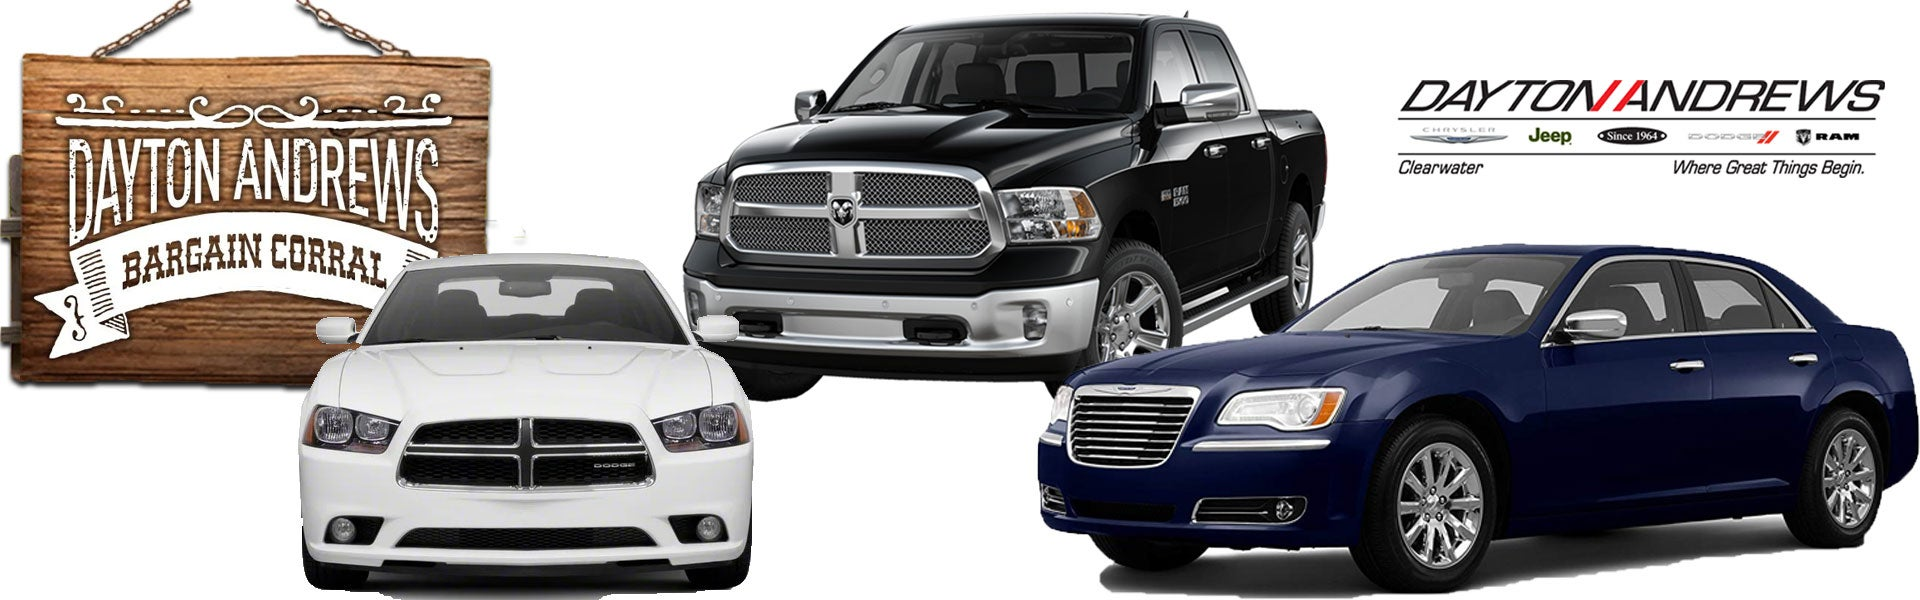 Dayton Andrews Jeep >> Clearwater Chrysler Dodge Jeep Ram Dealer In Clearwater